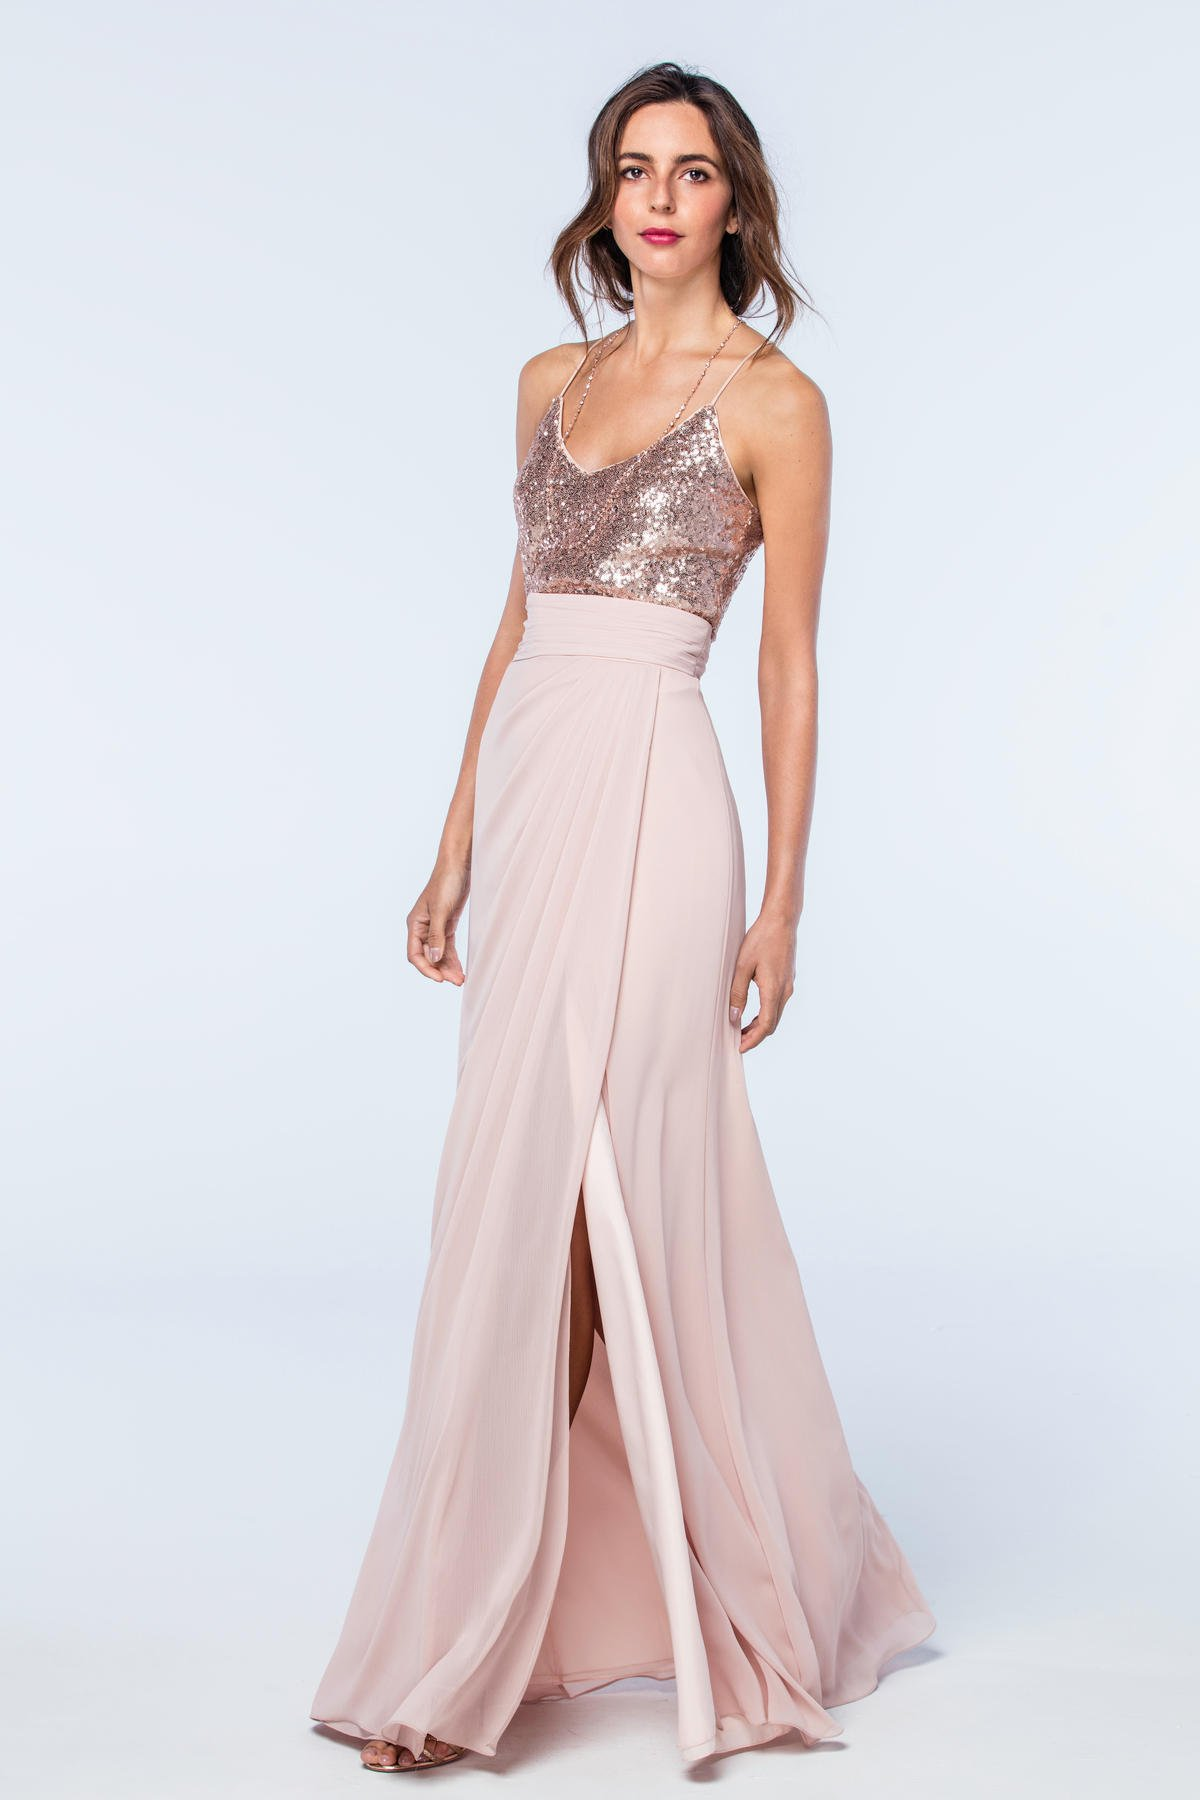 2508 Watters Bridesmaid Dress. Watters Maids at Bridals by Lori Atlanta. Watters bridesmaids gowns